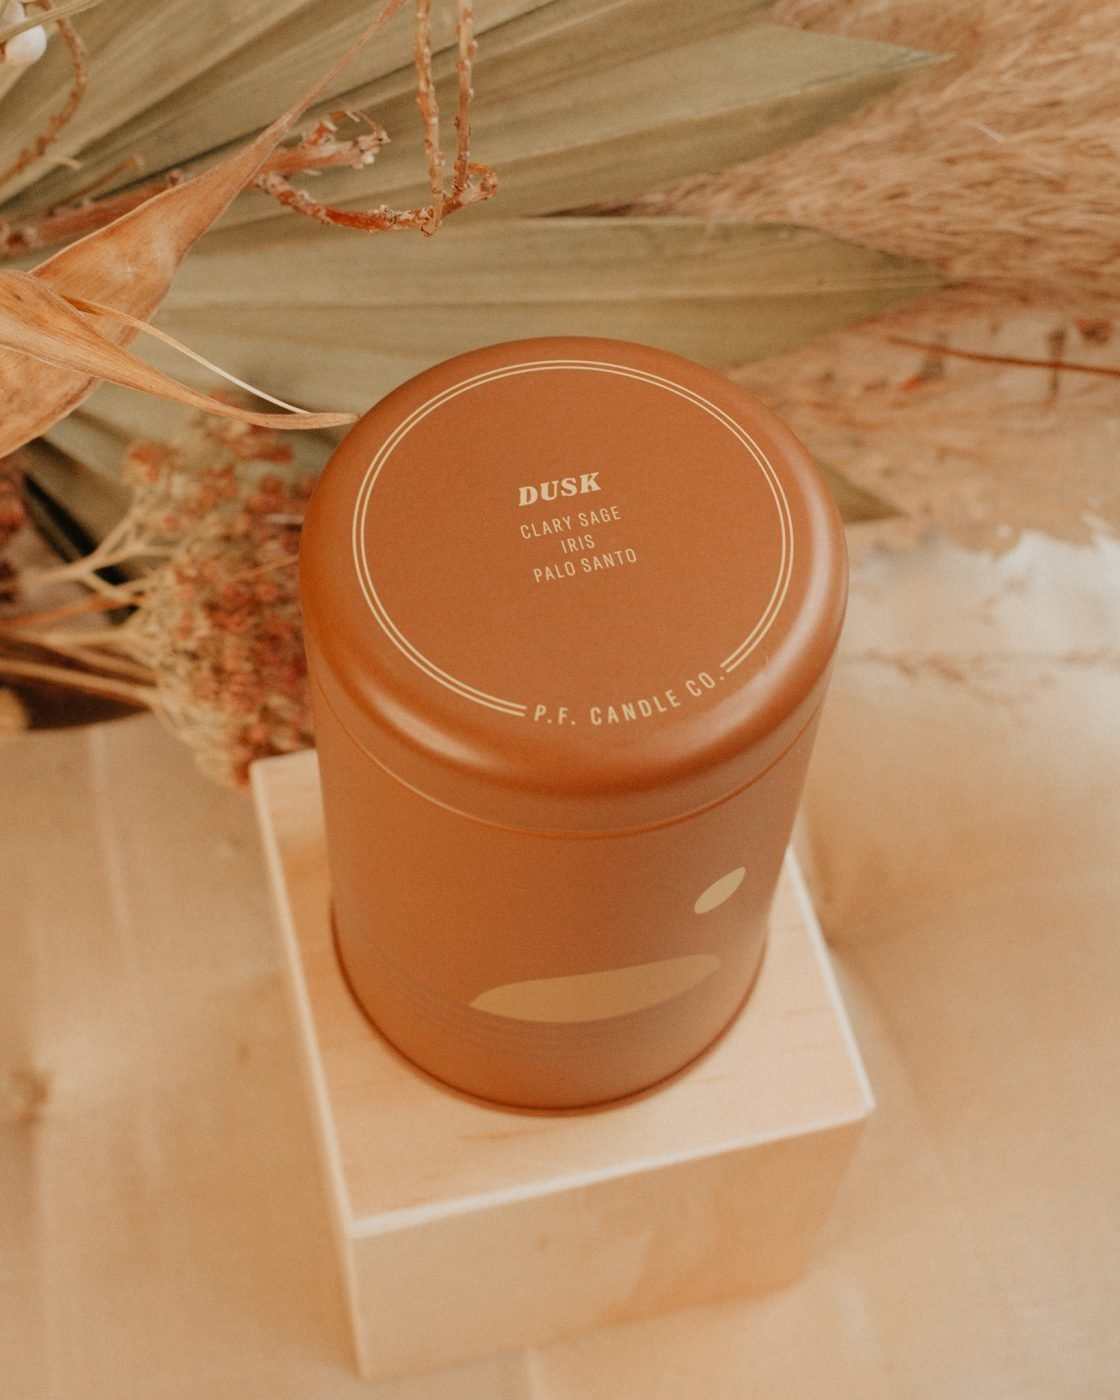 Dusk soy sunset candle from PF Candle Co